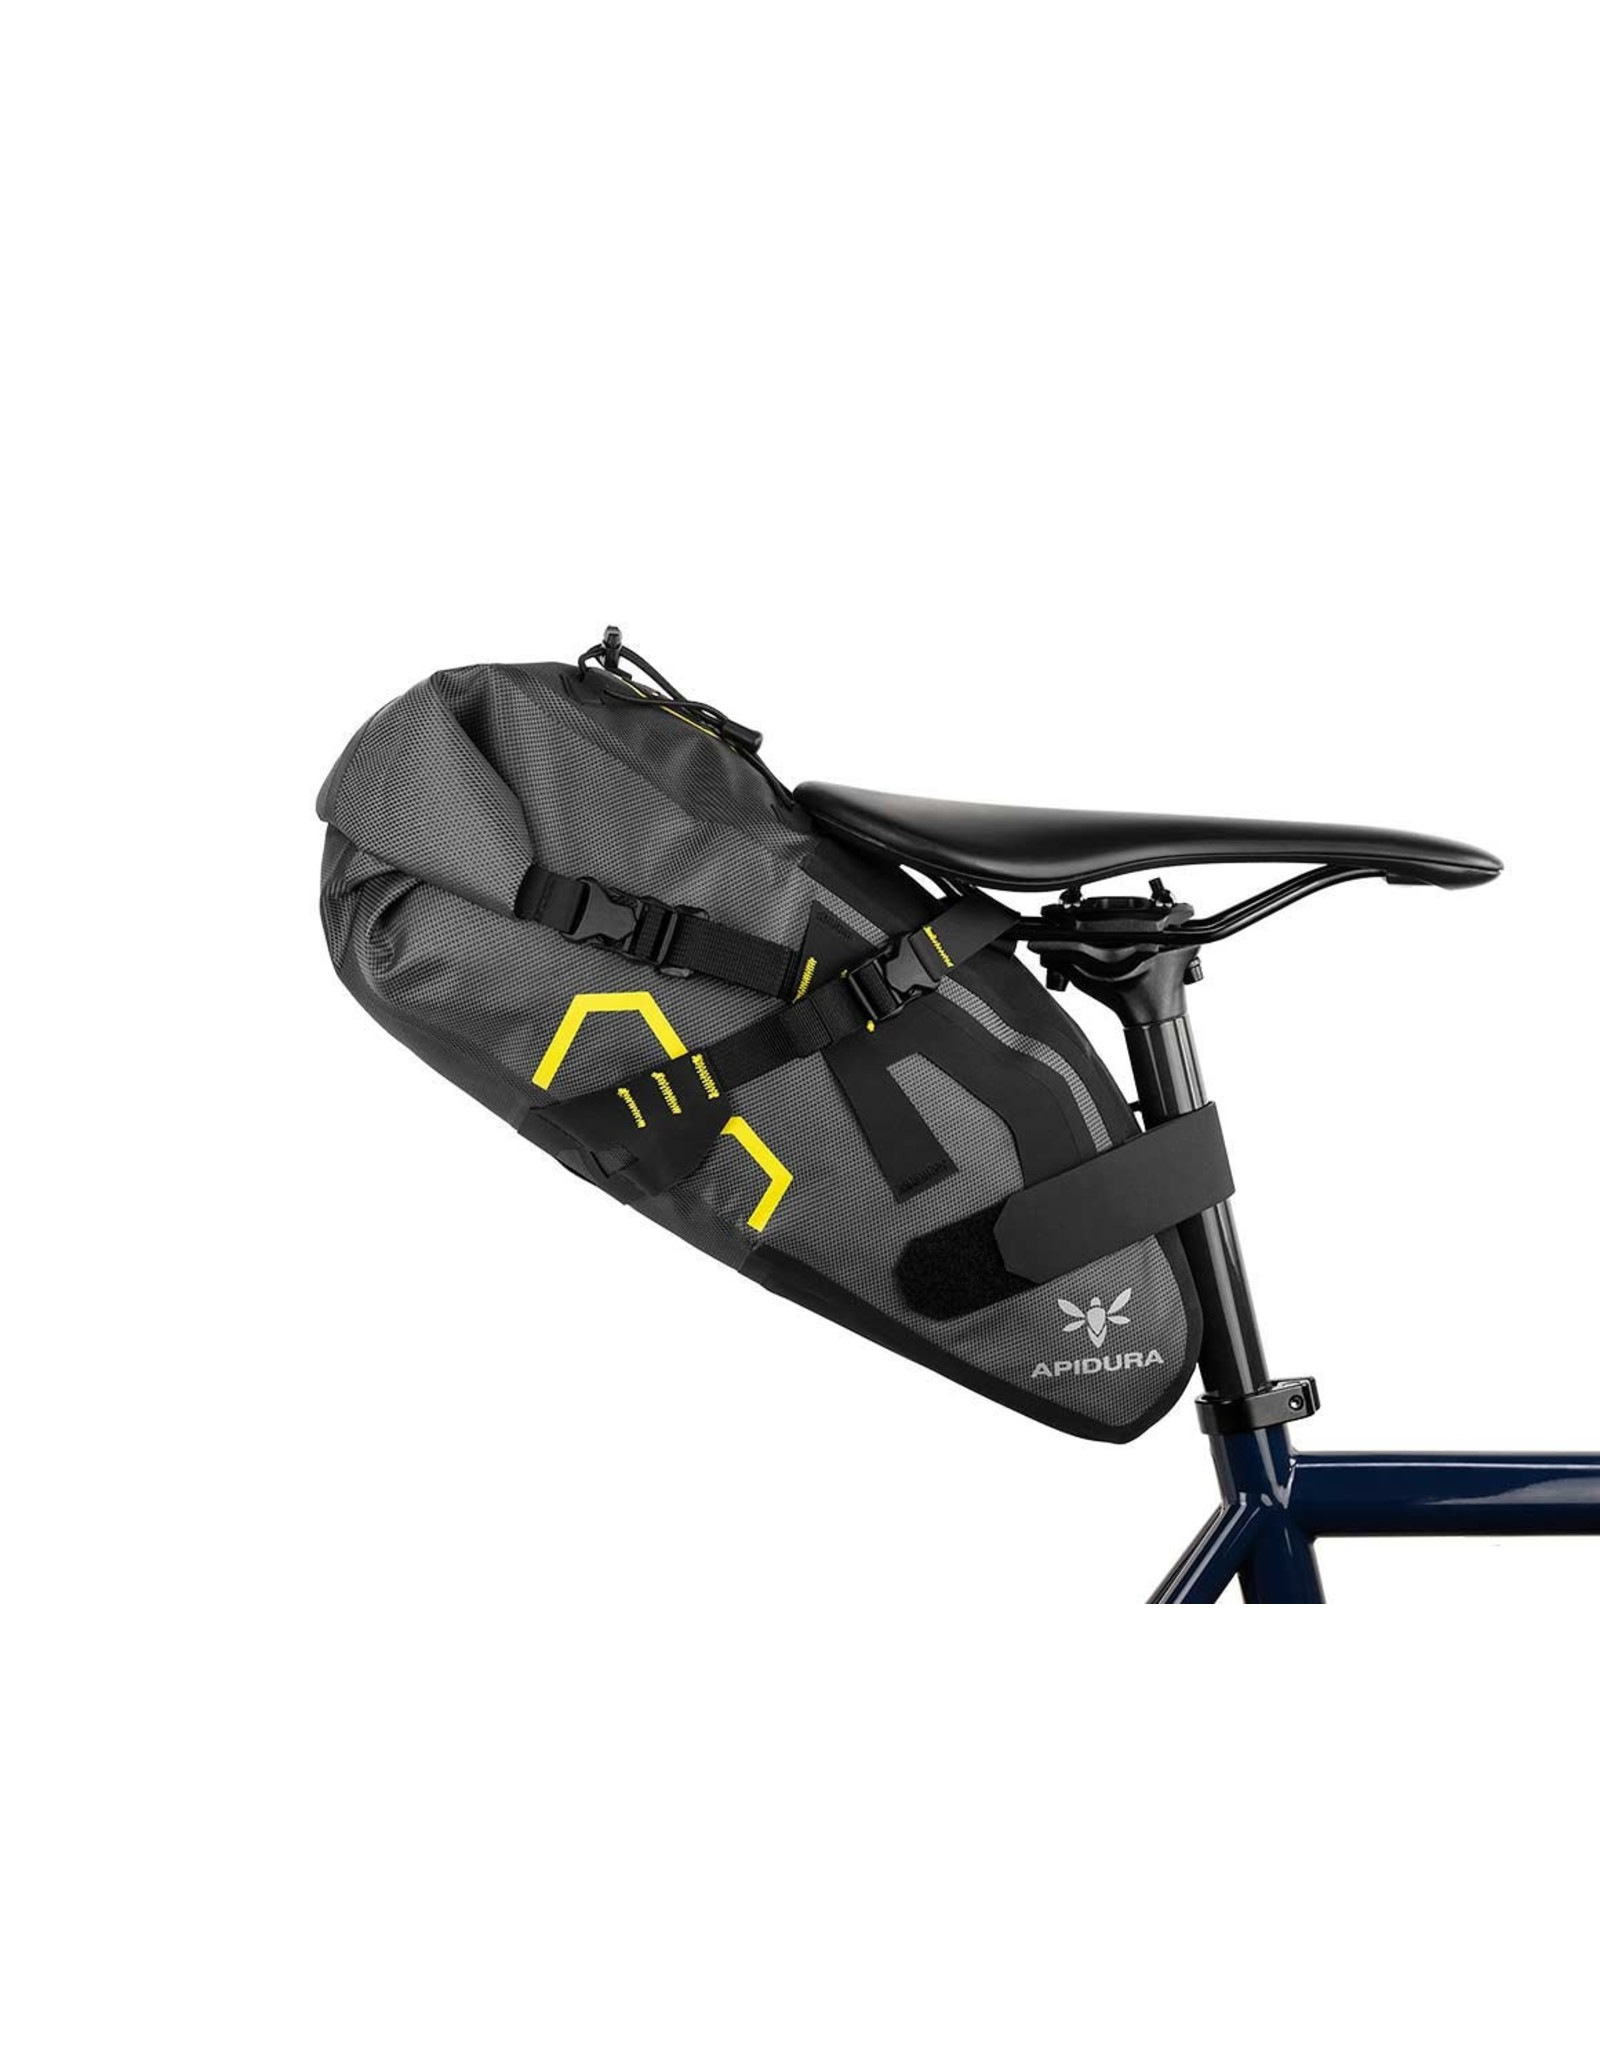 Apidura Apidura EXP 9L Saddle Pack